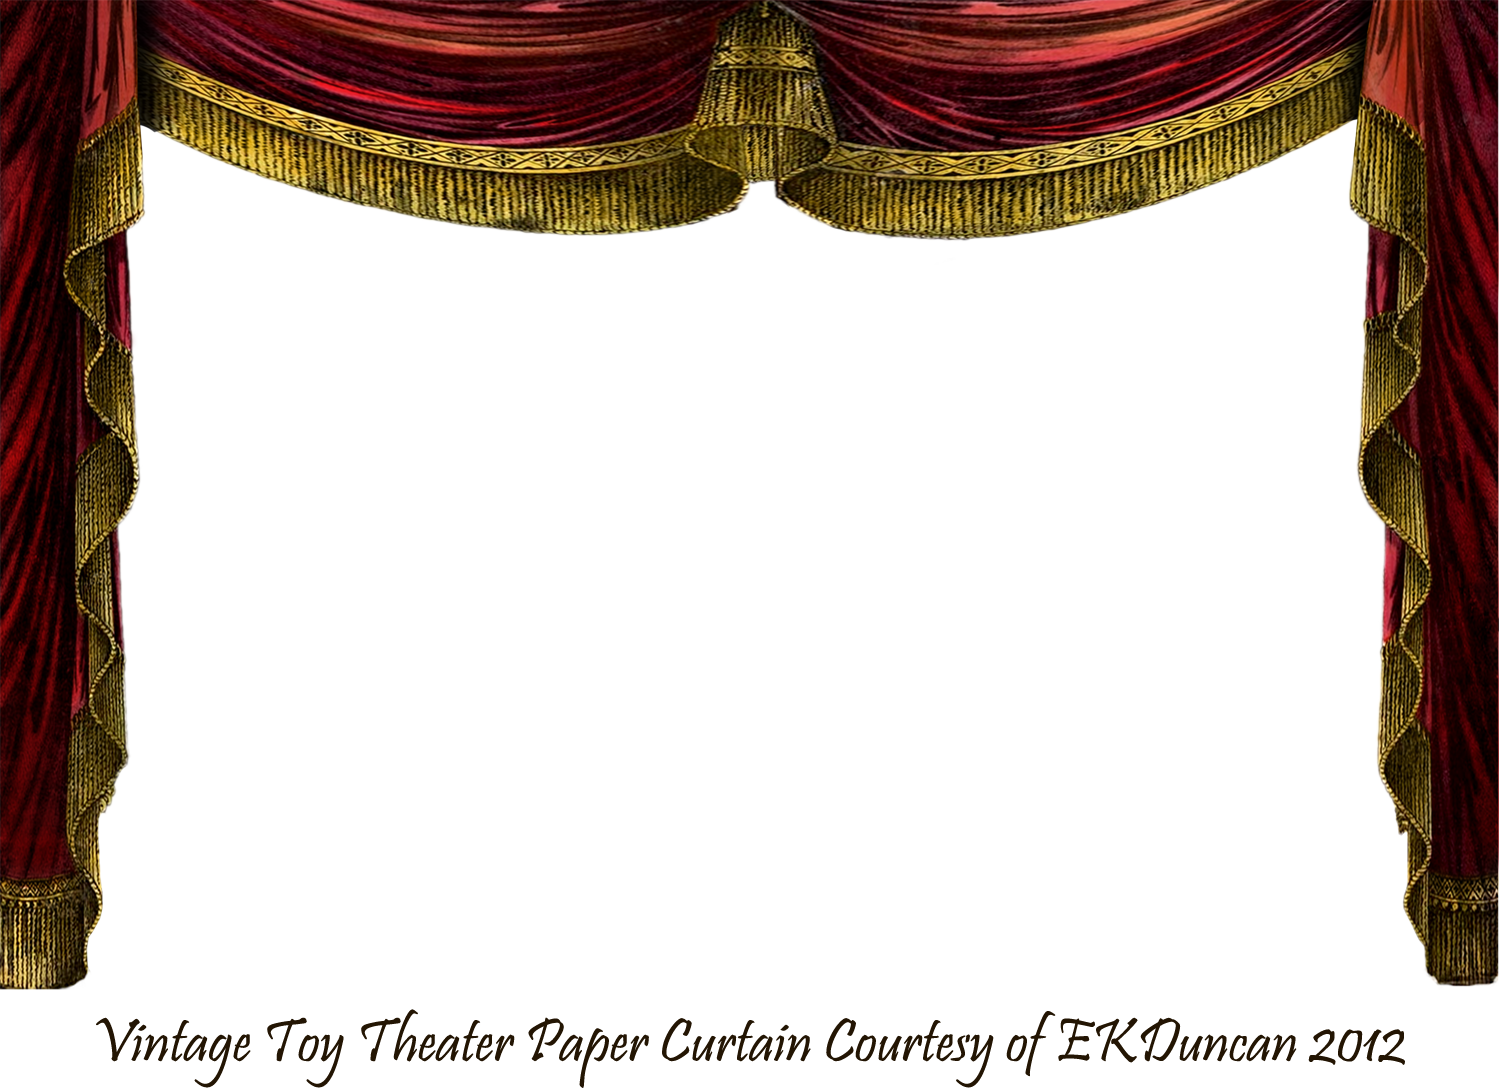 Stage clipart stage curtain. Free theatre curtains download